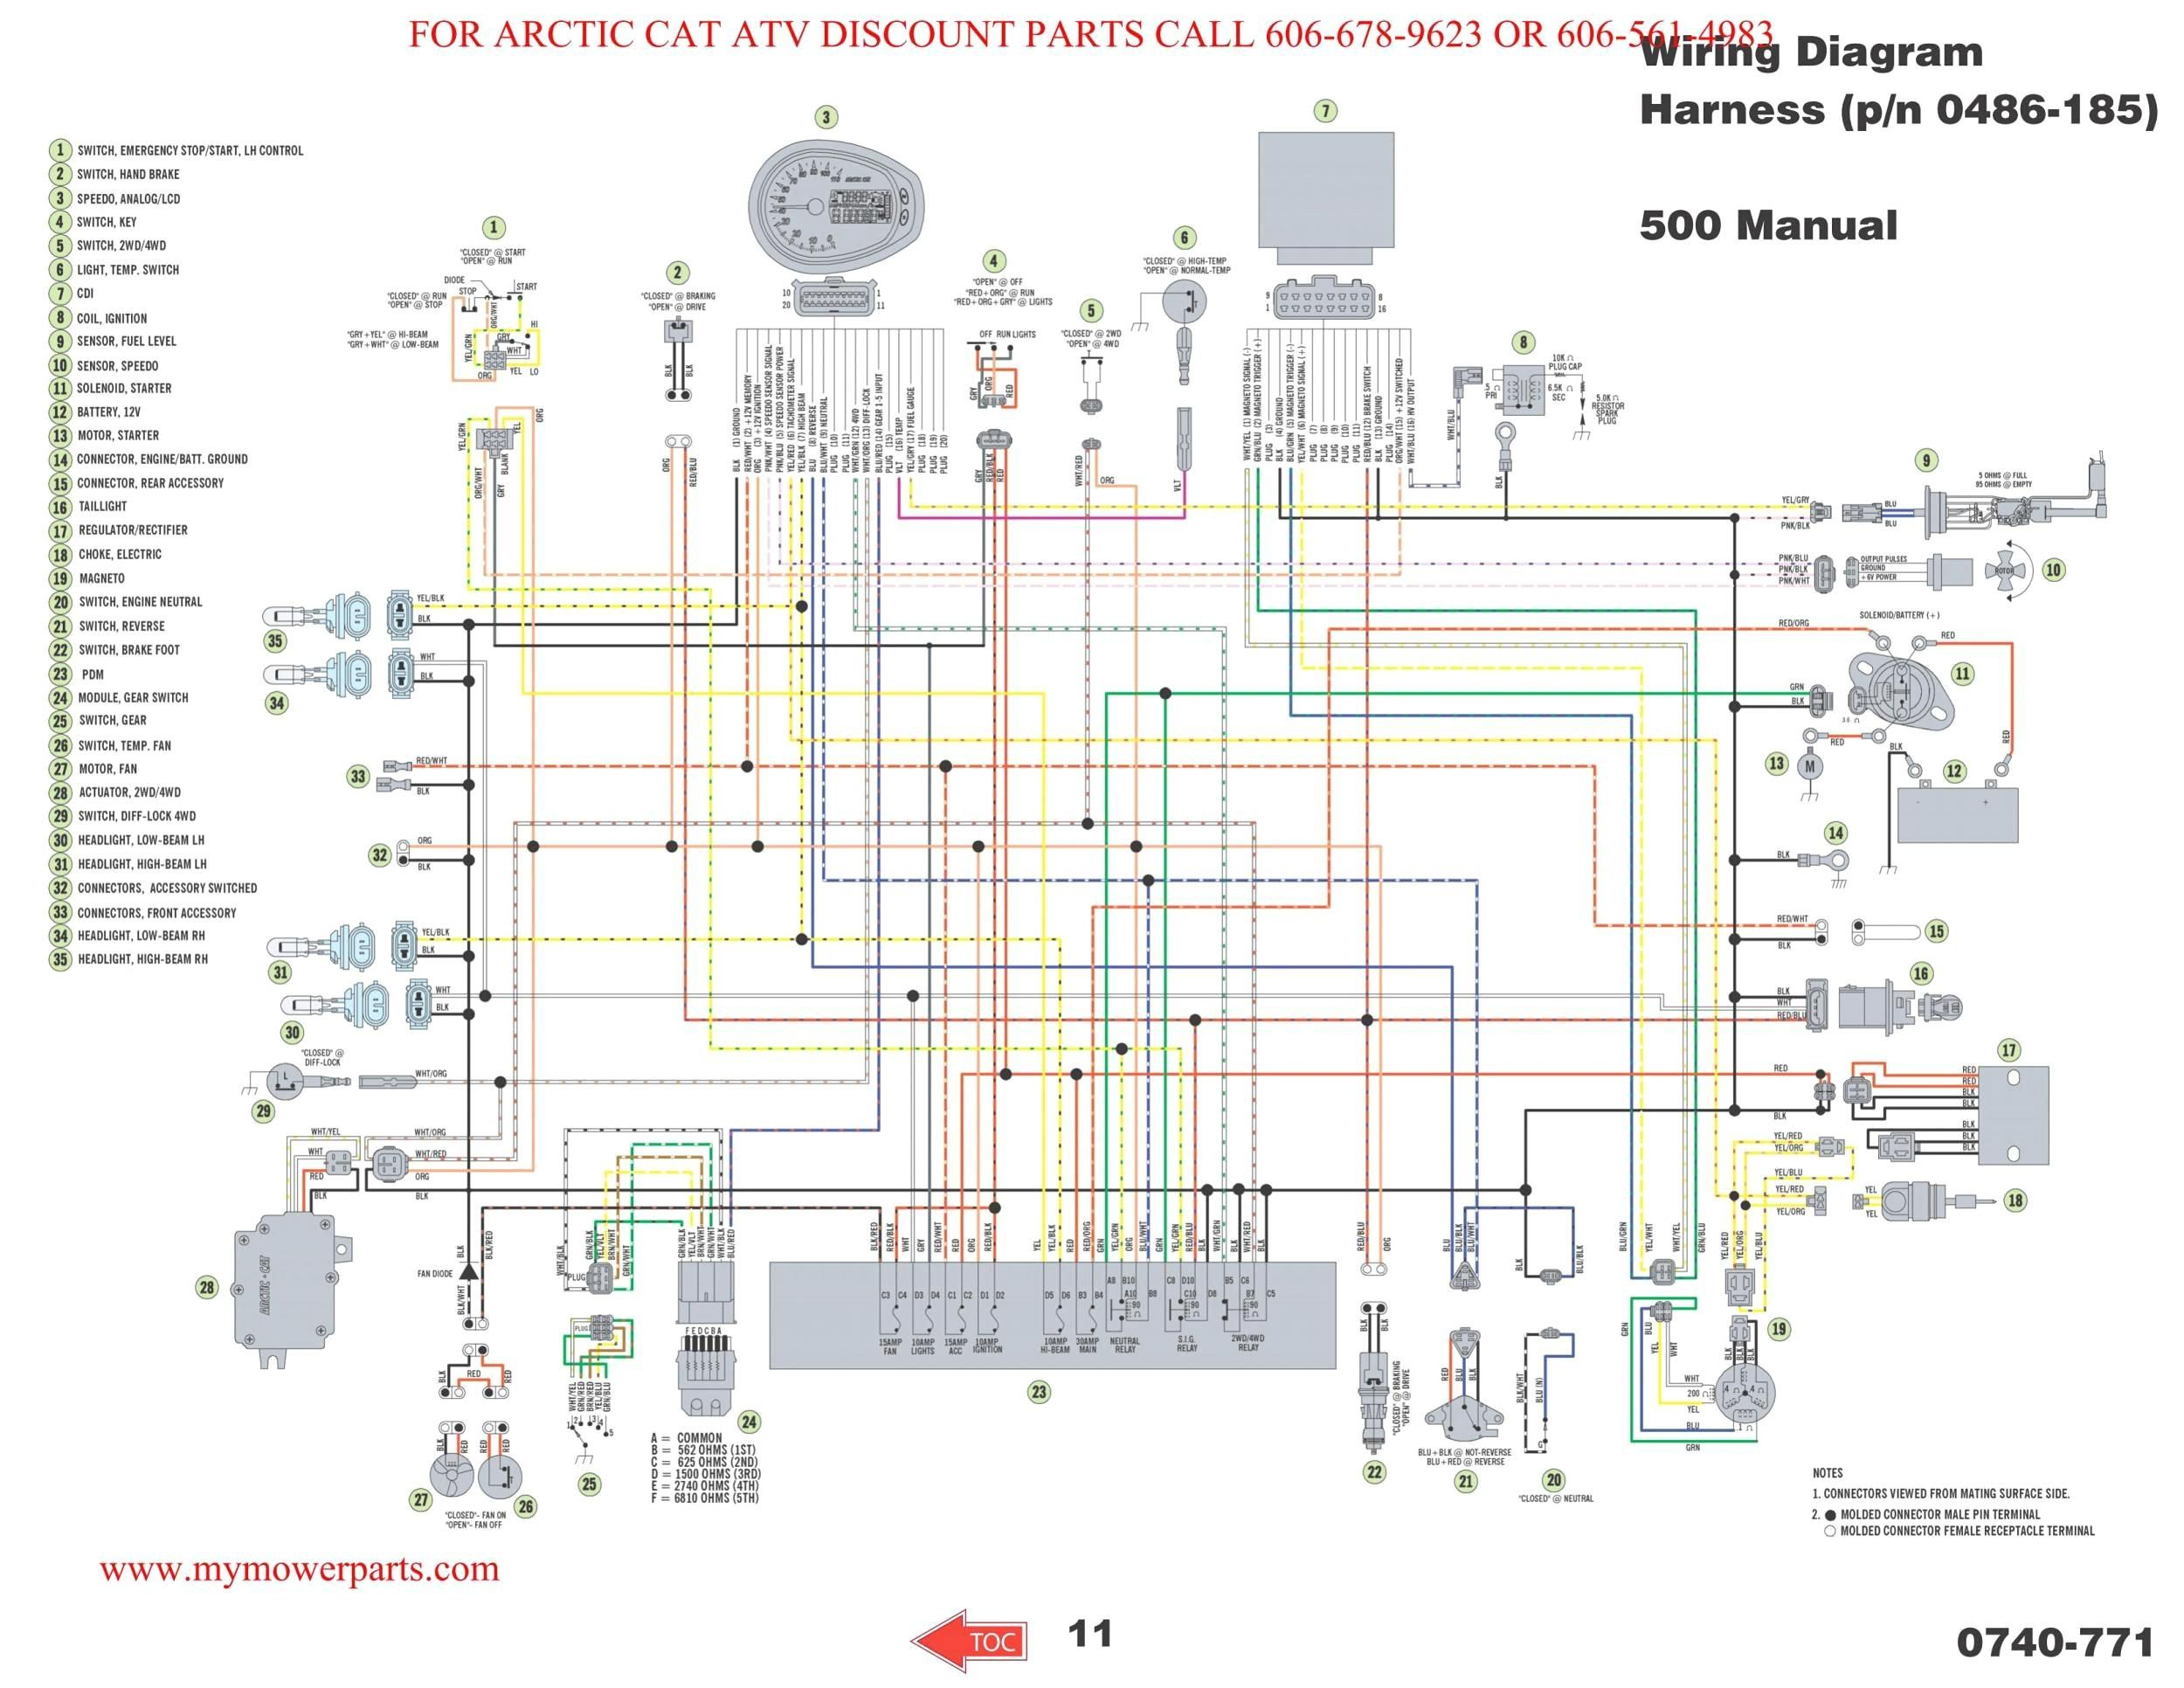 polaris predator 500 wiring diagram for | polaris ranger, diagram, ranger  pinterest